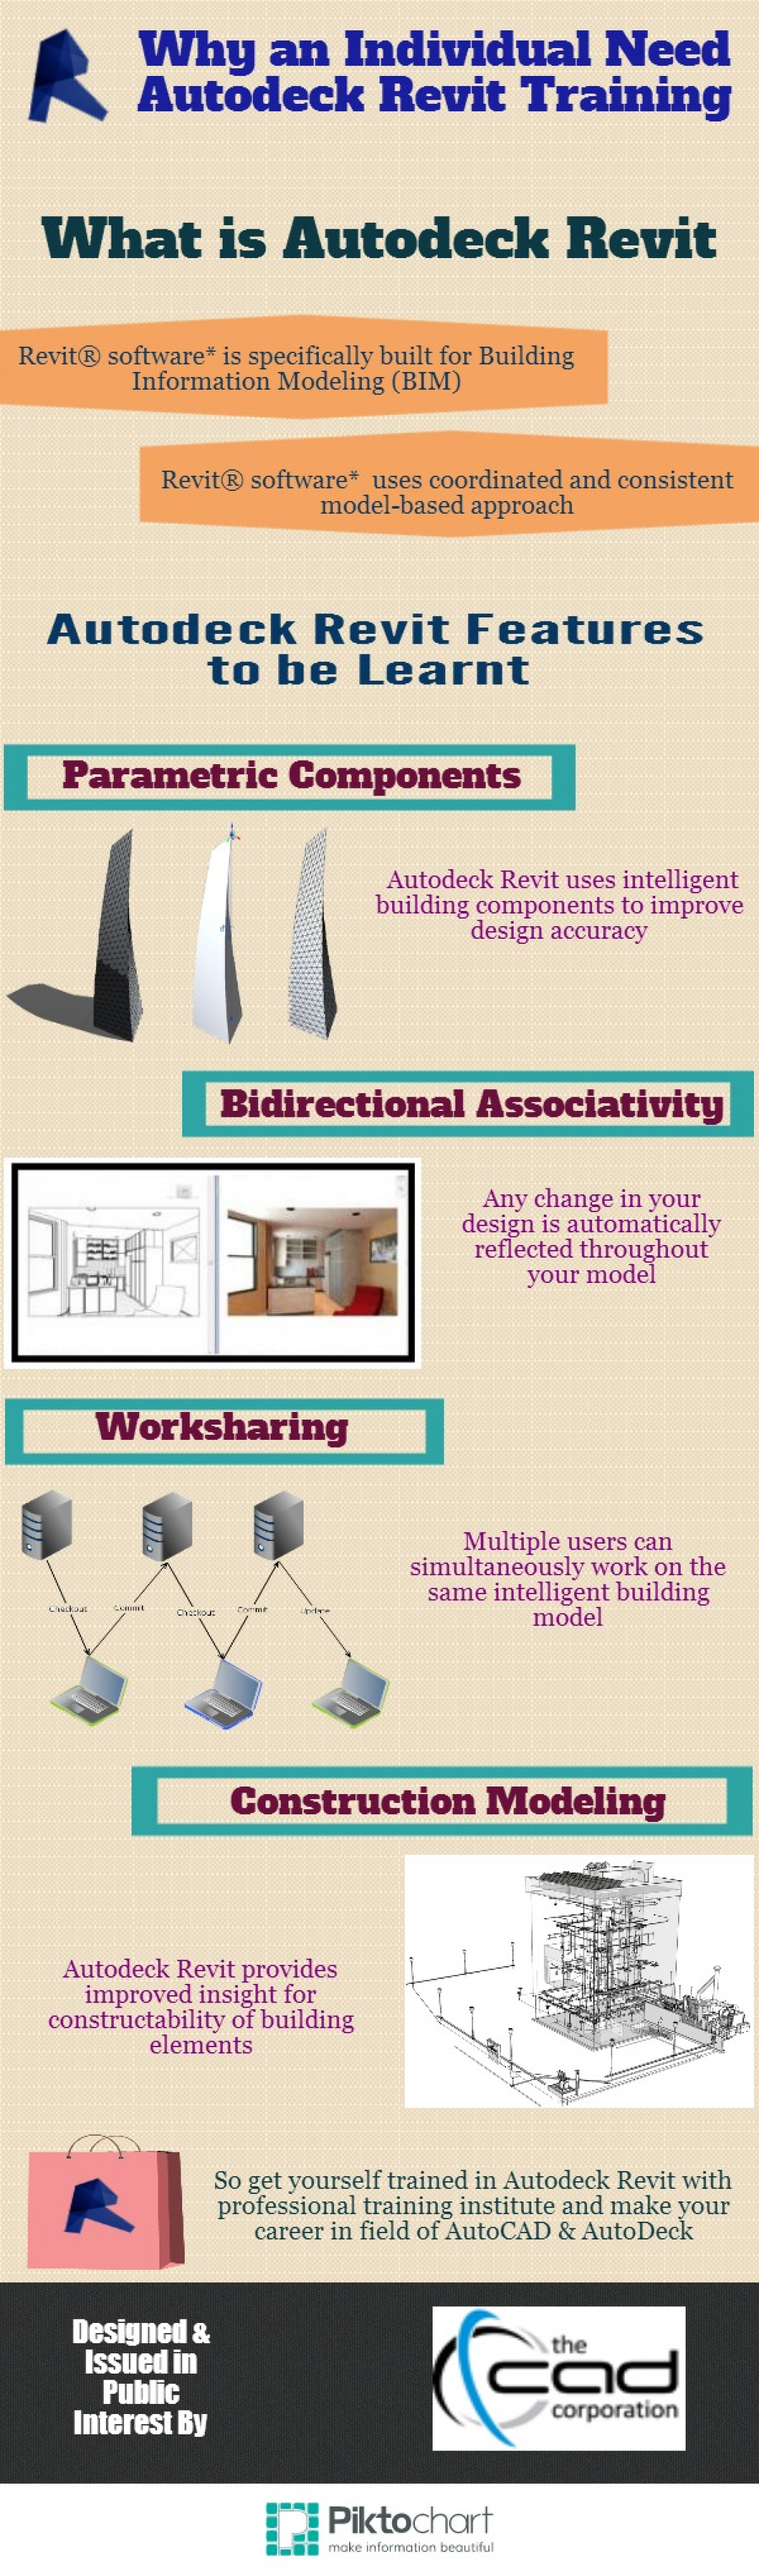 Why an Individual Need Autodeck Revit Training Infographic